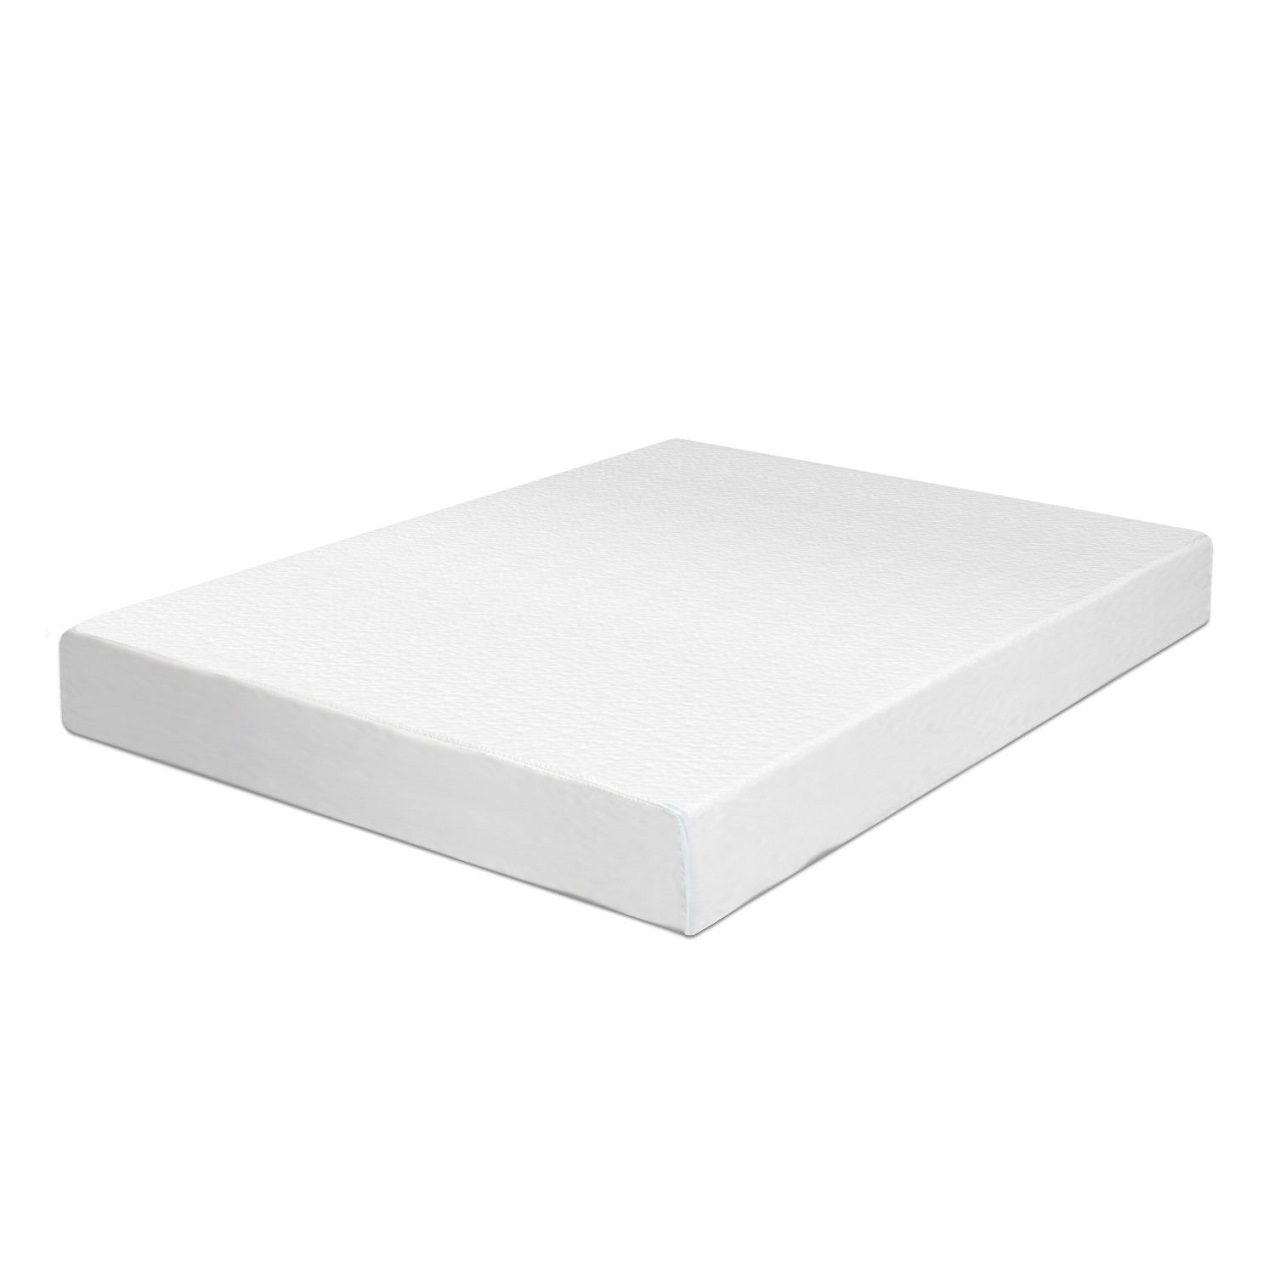 Swiss Ortho Sleep 6-Inch High-Density, 2 x Layered Memory Foam Mattress with Bamboo Cover Picture